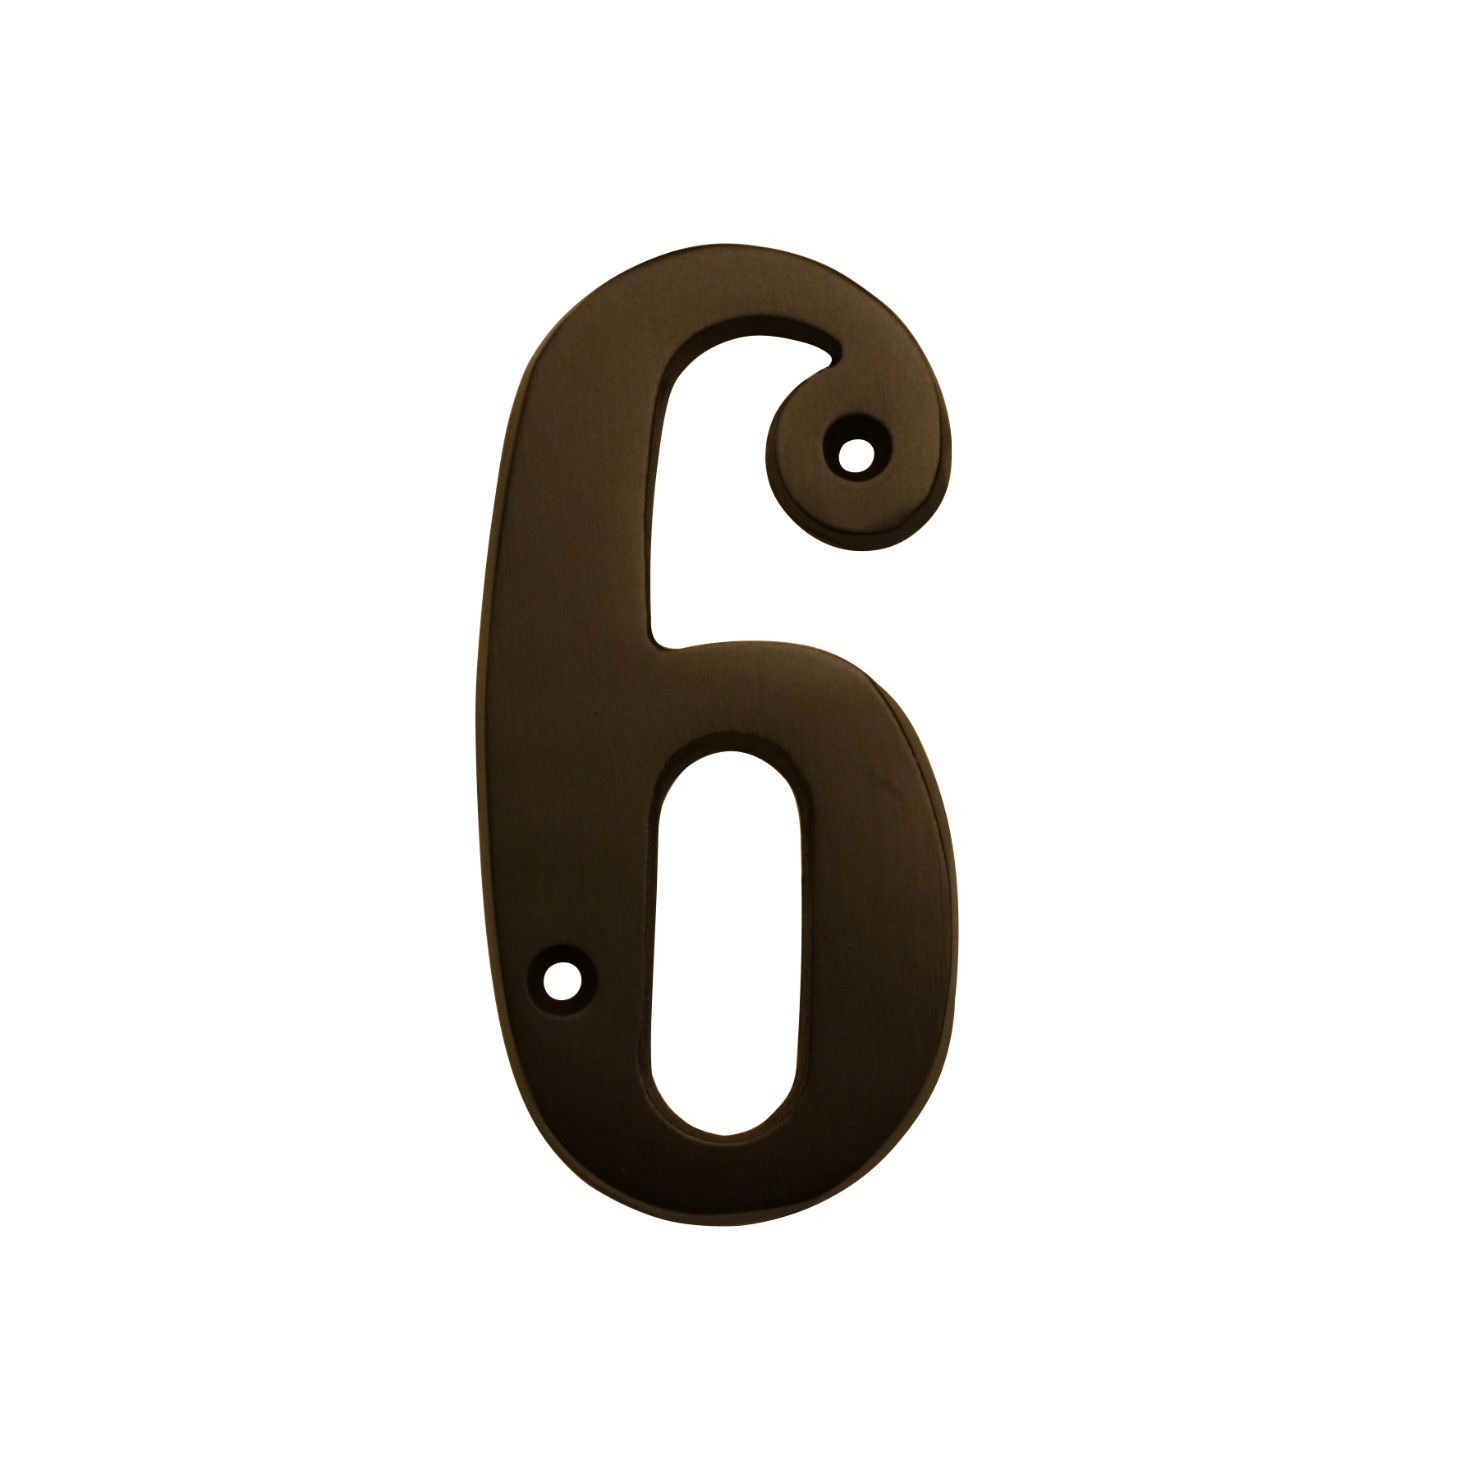 HOUSE NUMBERS, ELEGANT House Numbers — Oil Rubbed Bronze-6